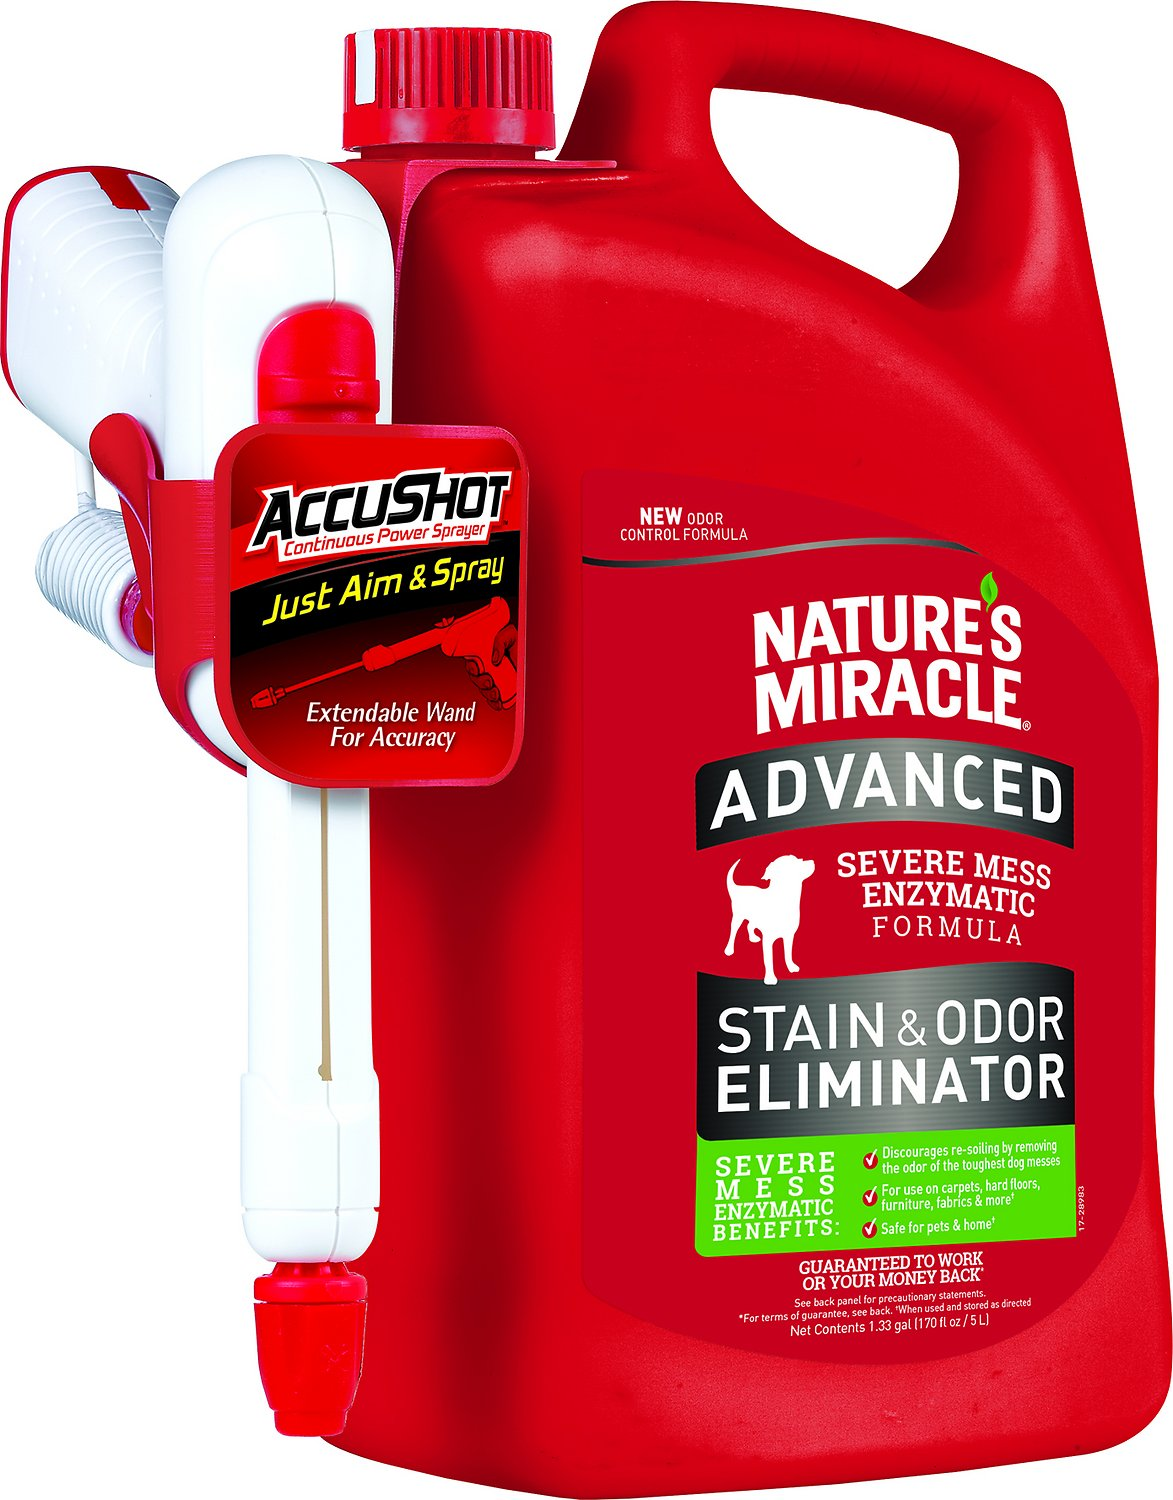 Nature's Miracle Dog Advanced Stain & Odor Remover, Accushot Spray, 1.3-gal bottle (Weights: 12.26pounds) Image